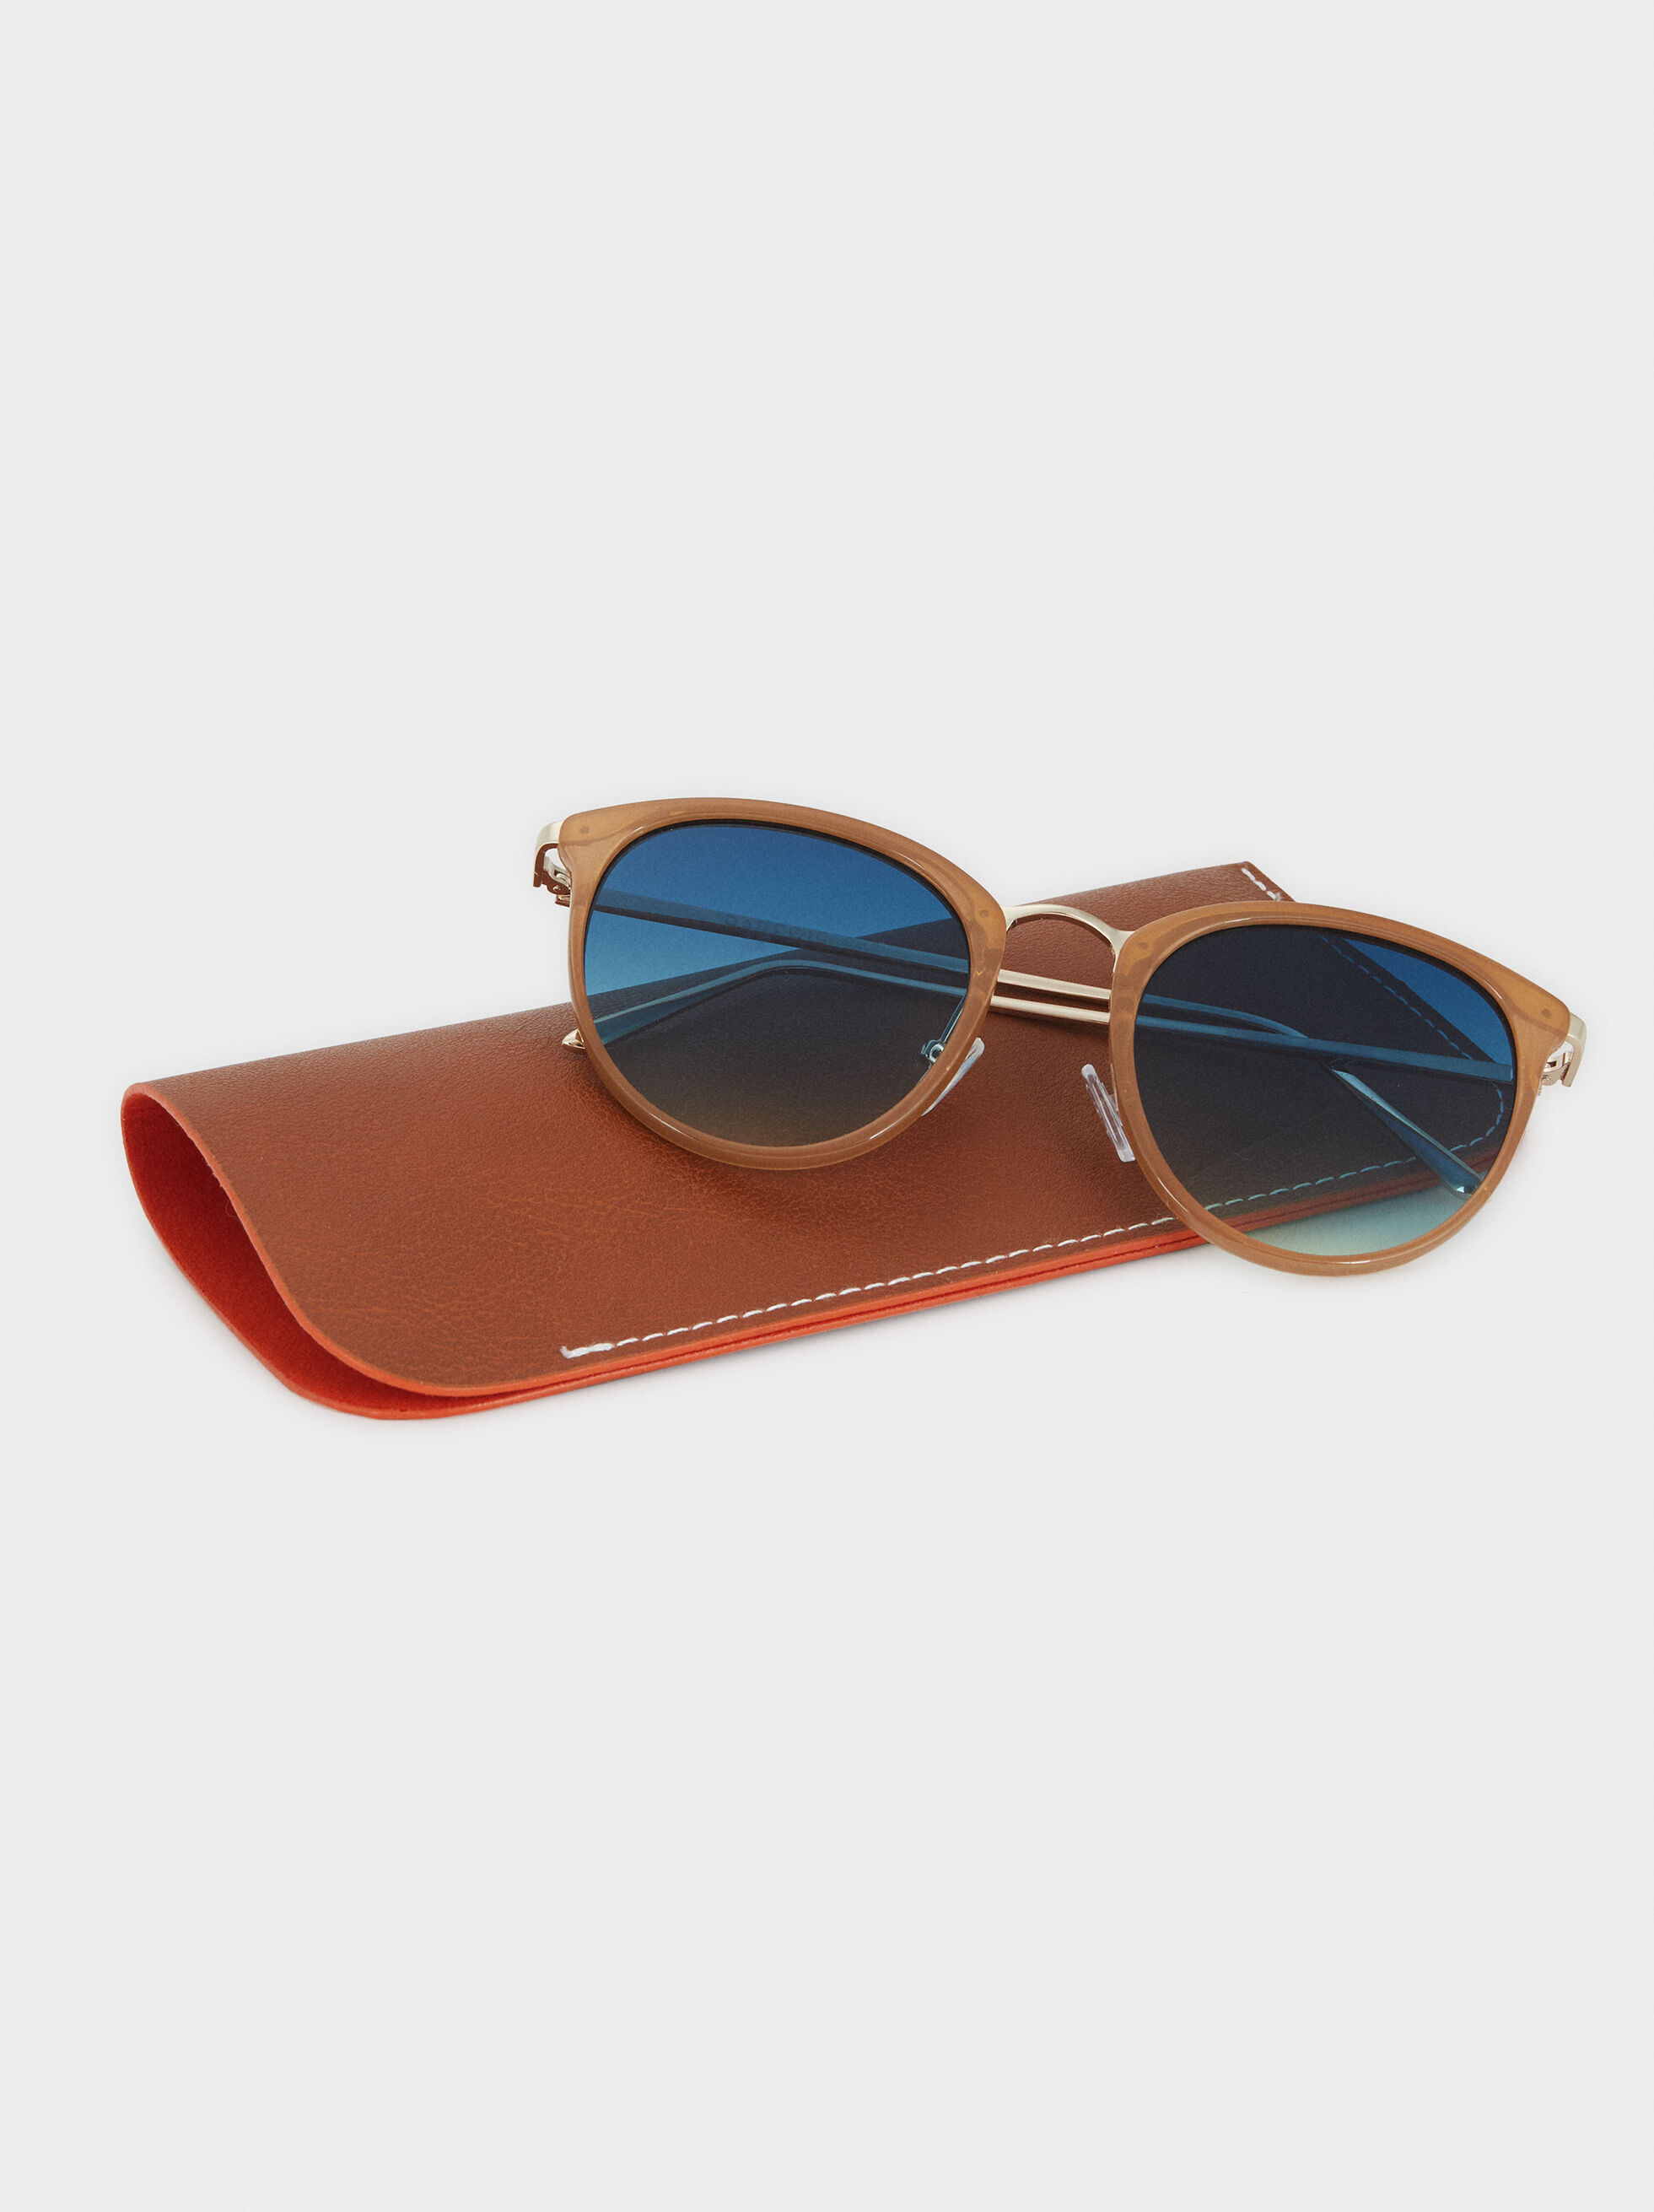 Sunglasses With Round Frames, Camel, hi-res